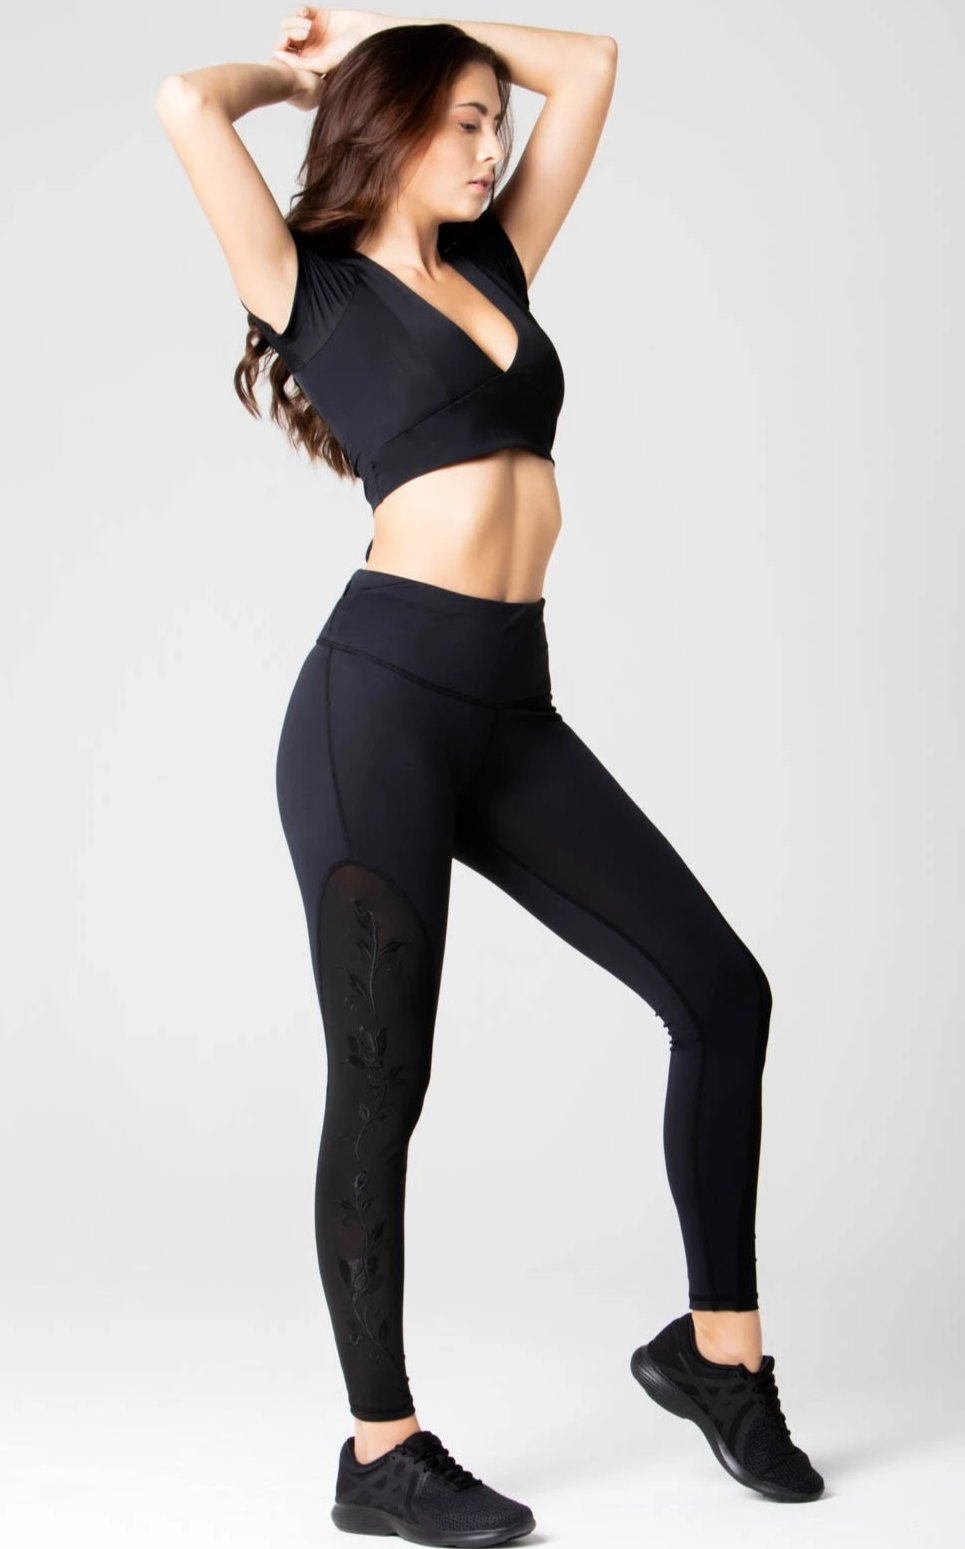 Marie Embroidery High Waist Legging